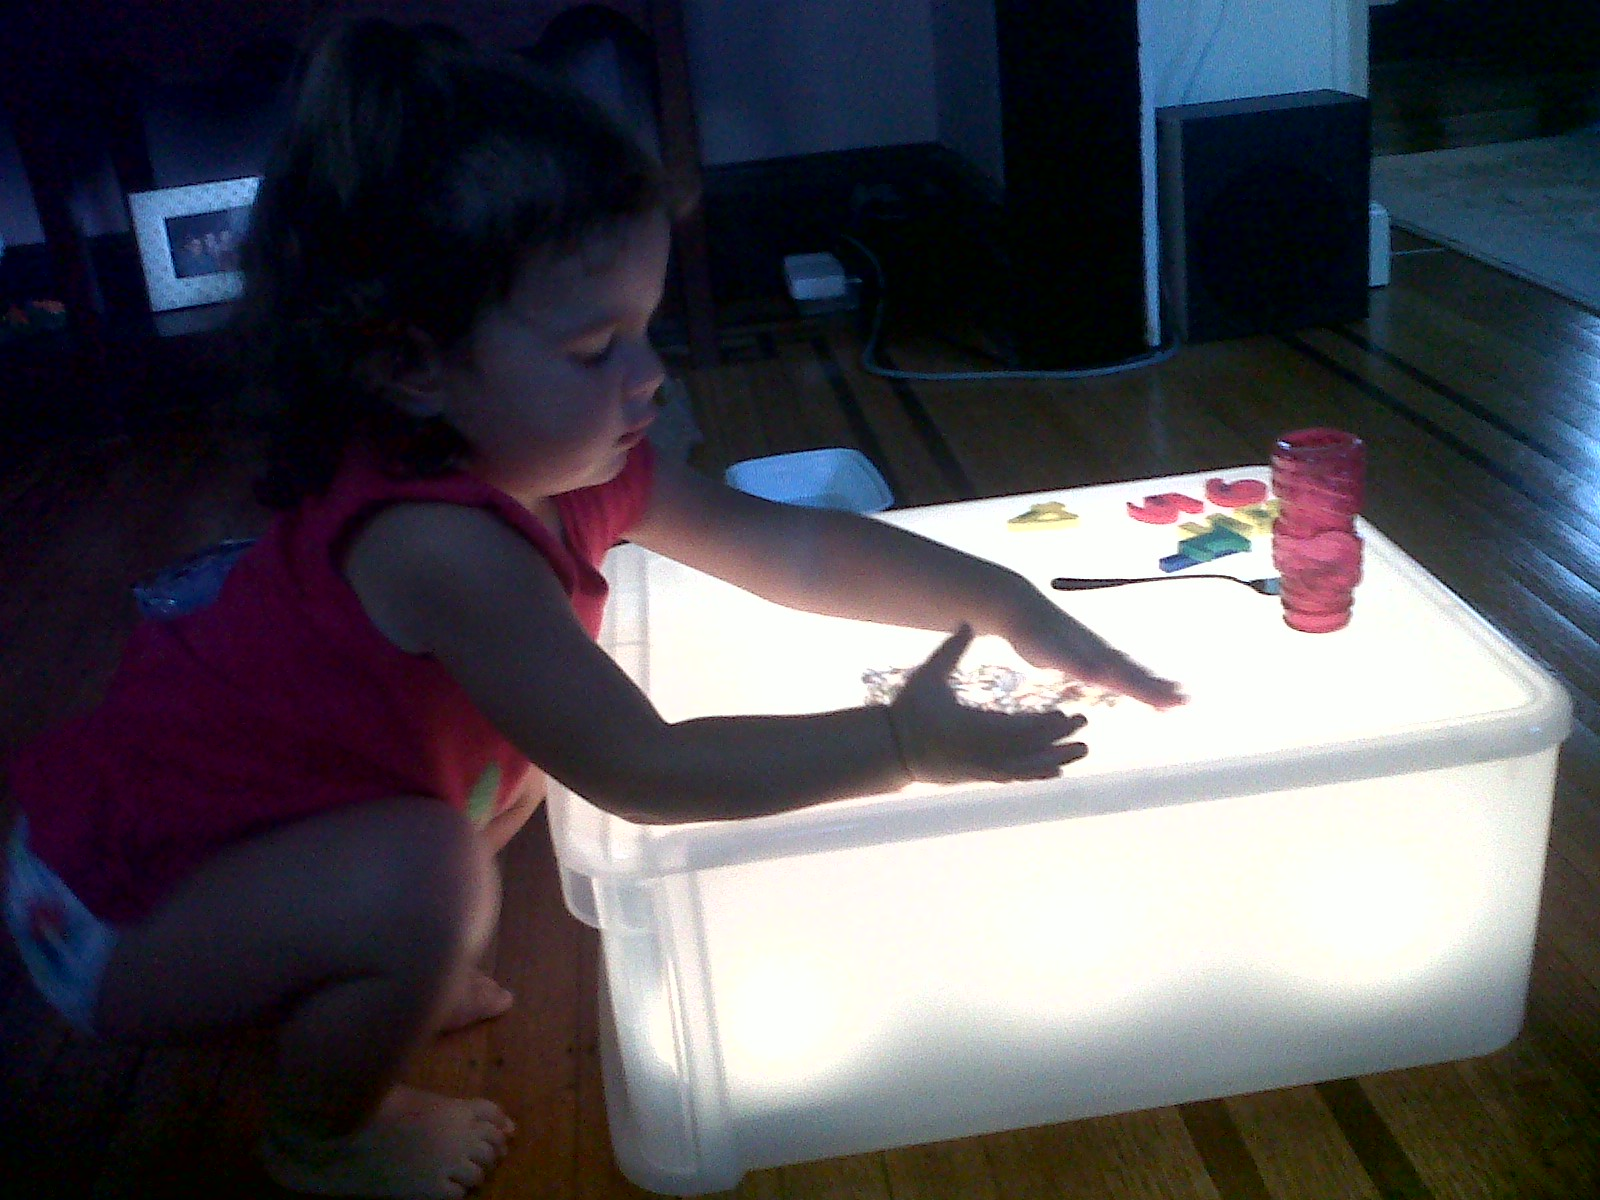 How To Make A Nightlight Make Your Own Light Table And Add Some Reggio Emilia To